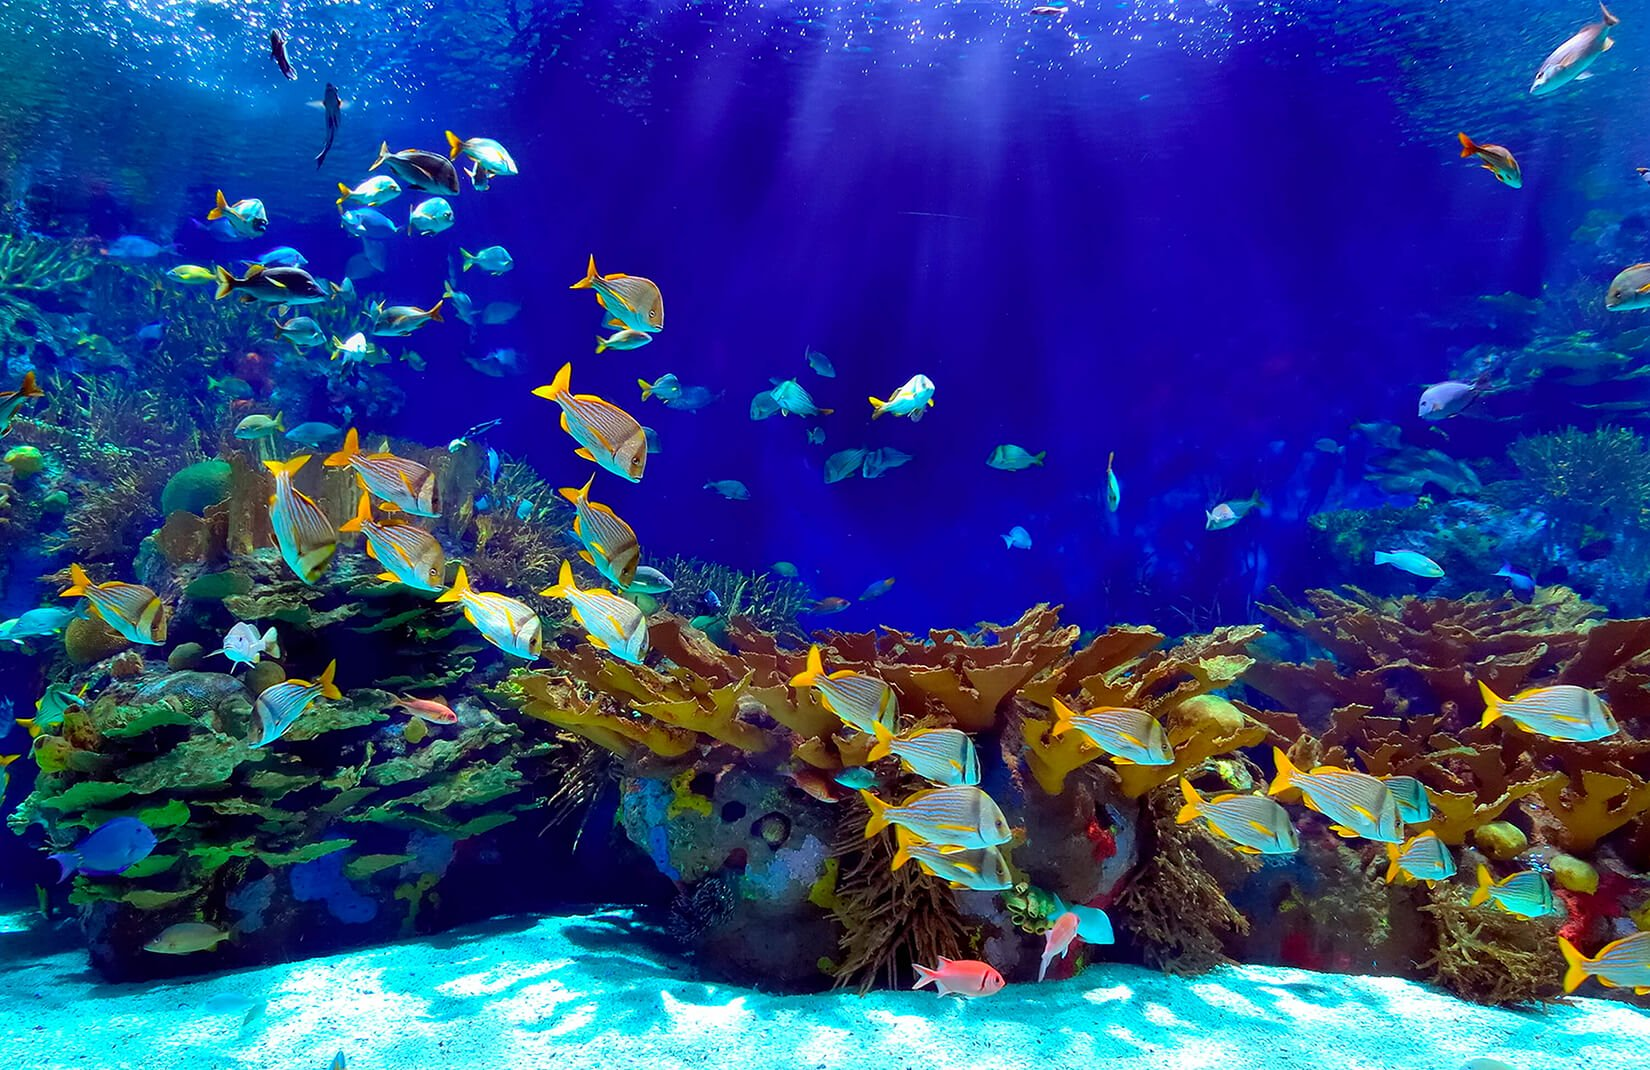 underwater wallpaper,marine biology,aquarium,water,underwater,fish